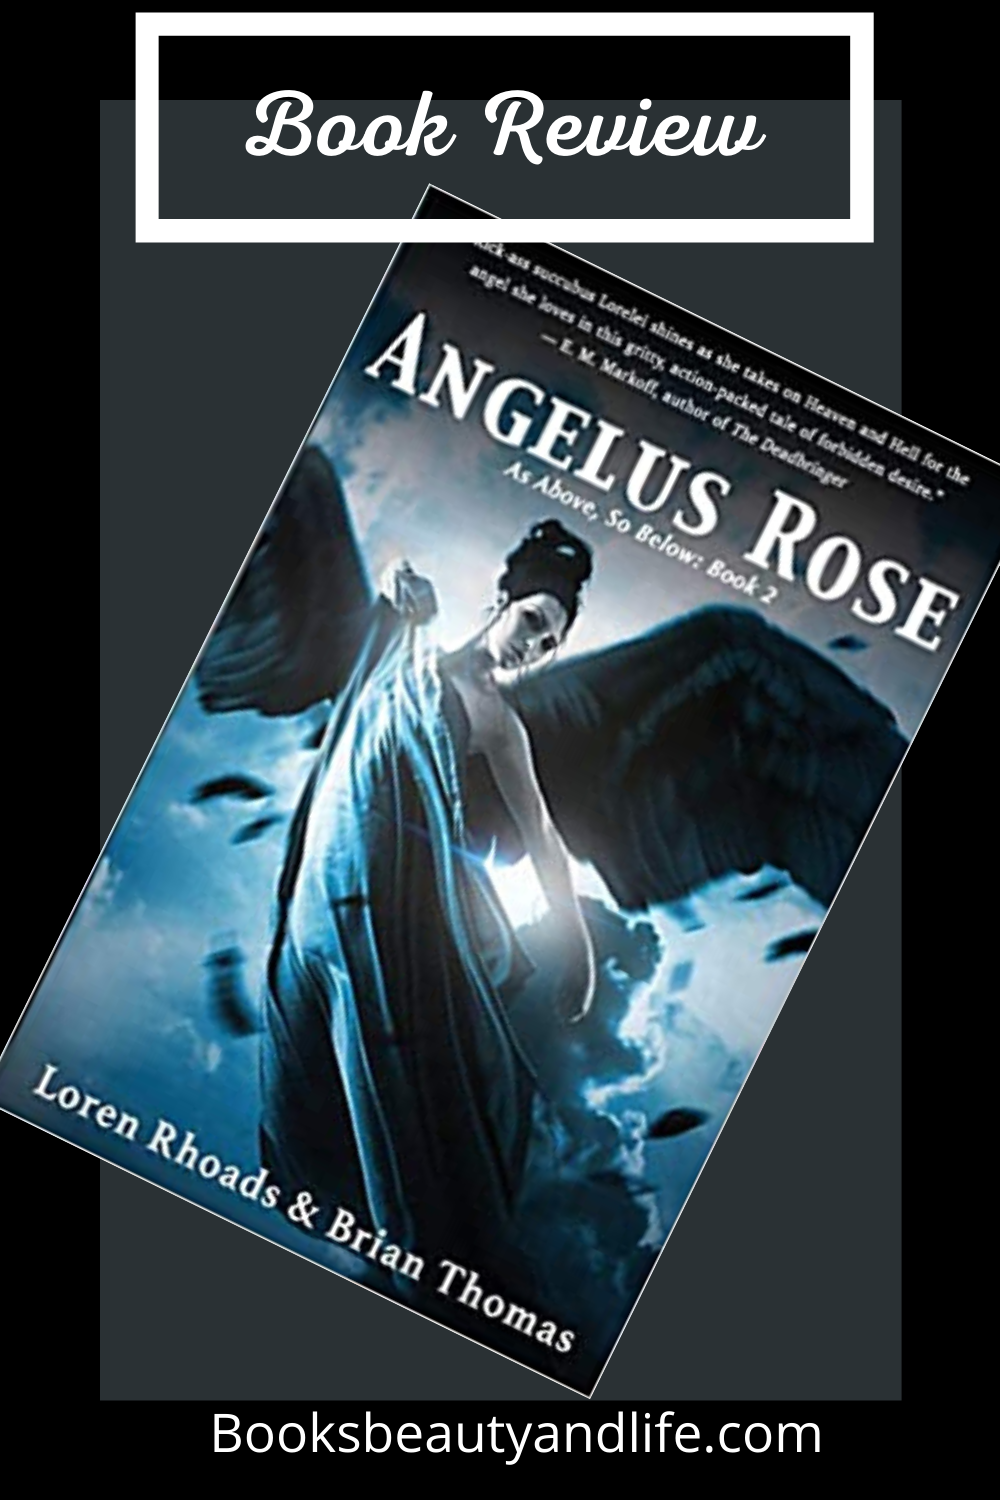 Angelus Rose By Loren Rhoads & Brian Thomas  Review